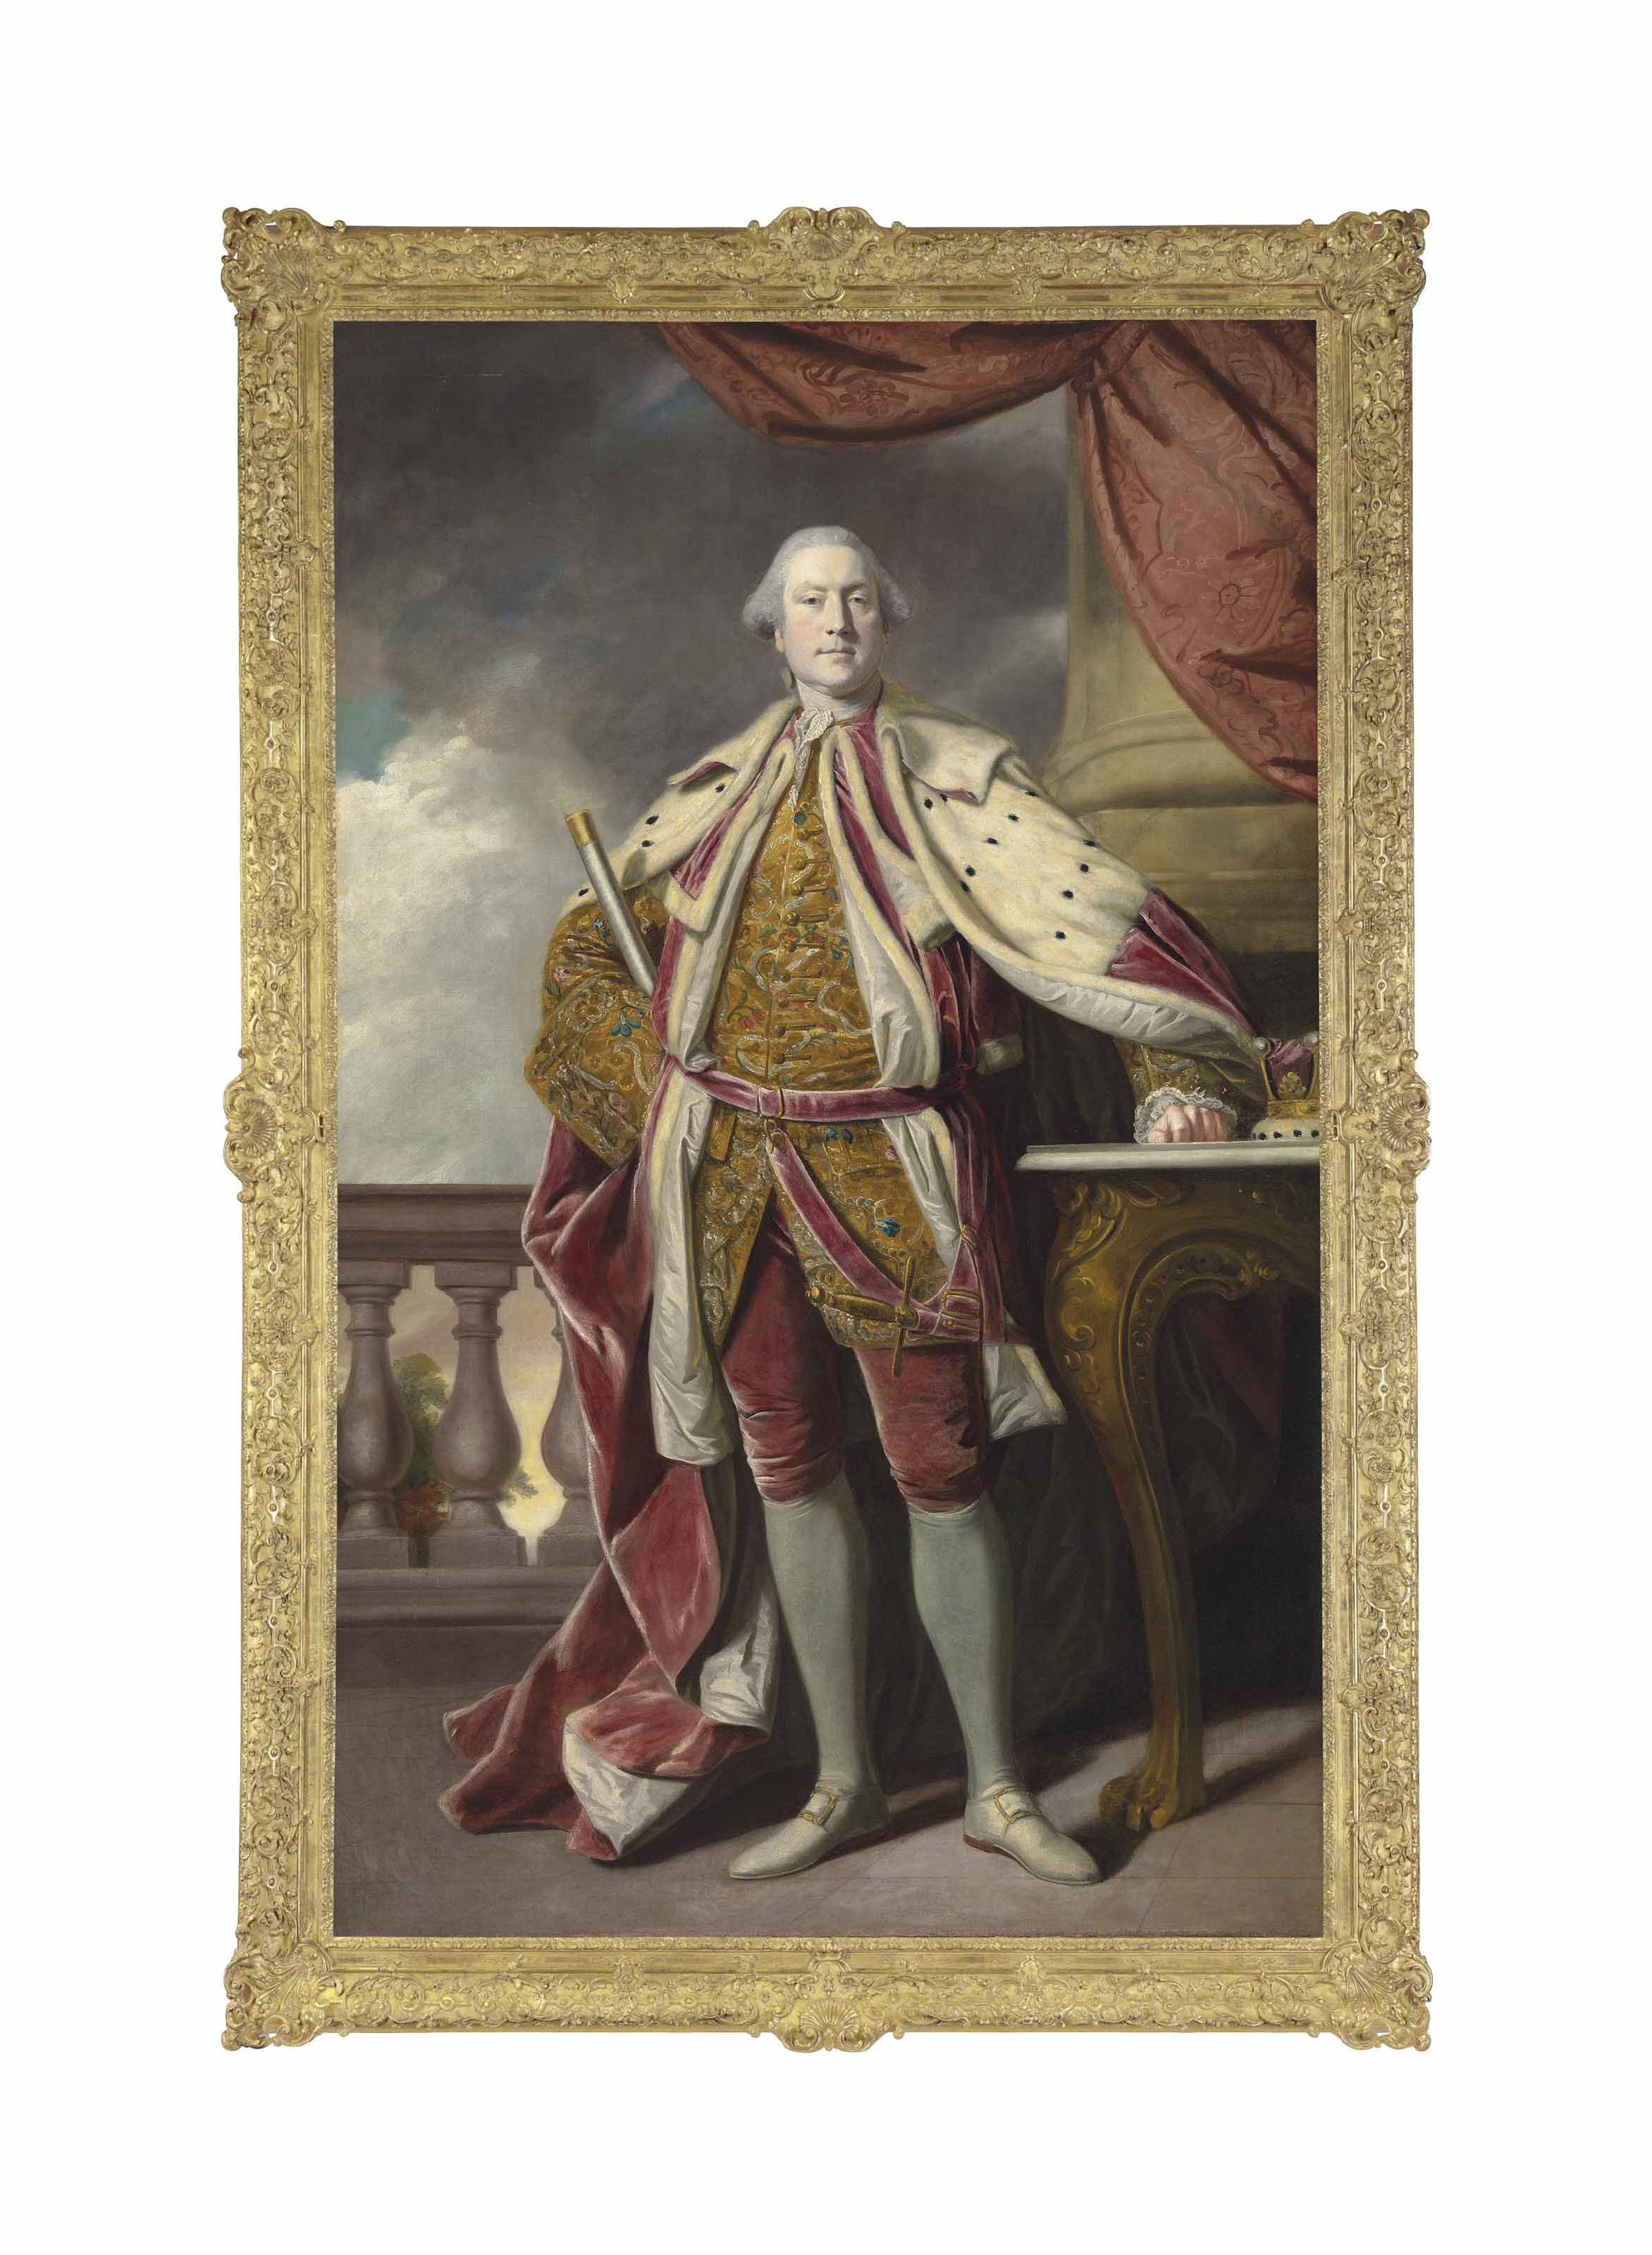 Portrait of James Hay (1726-1778), 15th Earl of Erroll, full-length, in Coronation robes, holding the baton of the Lord High Constable of Scotland, a balustrade and a tree beyond